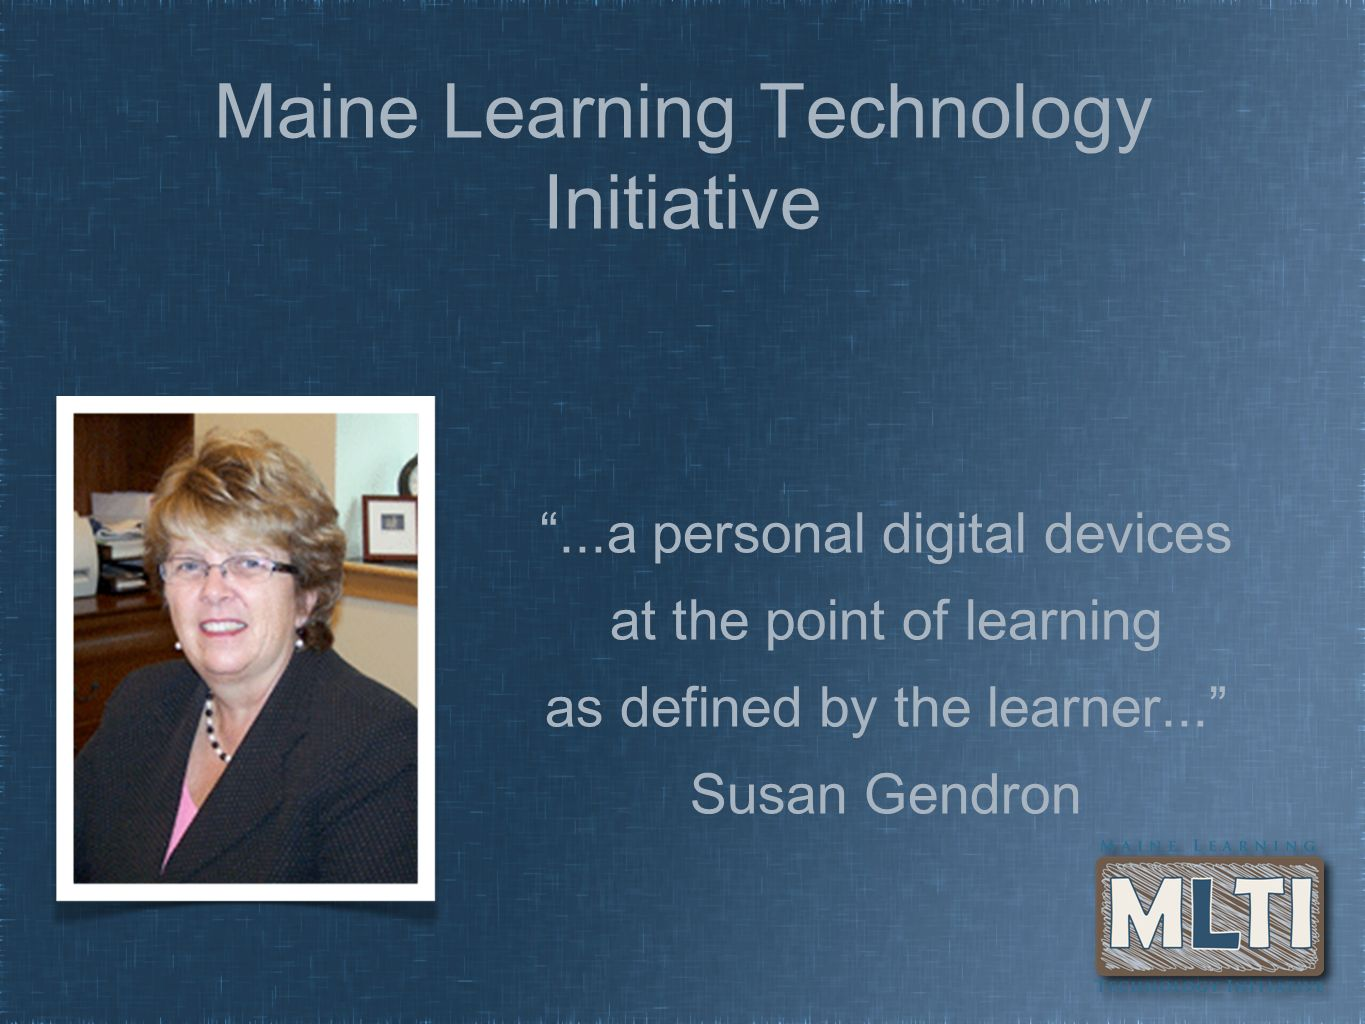 Maine Learning Technology Initiative...a personal digital devices at the point of learning as defined by the learner... Susan Gendron